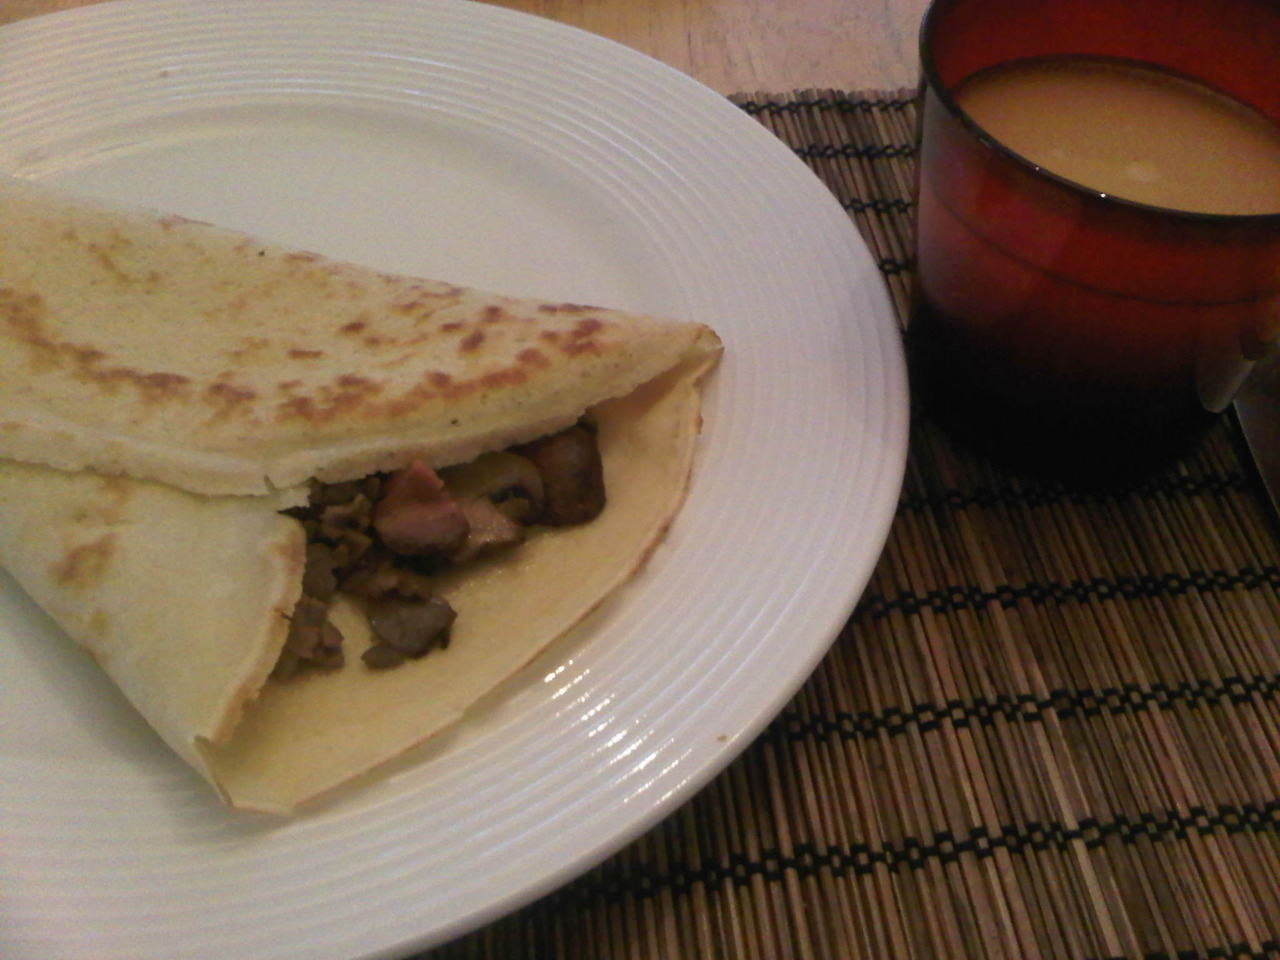 Roast Beef and Mushroom Crepe (with a Nutella Crepe on the side!) For crepe batter: 1 cup flour, 2 eggs, 1 cup milk, 2 tbsp melted butter, and a pinch of salt